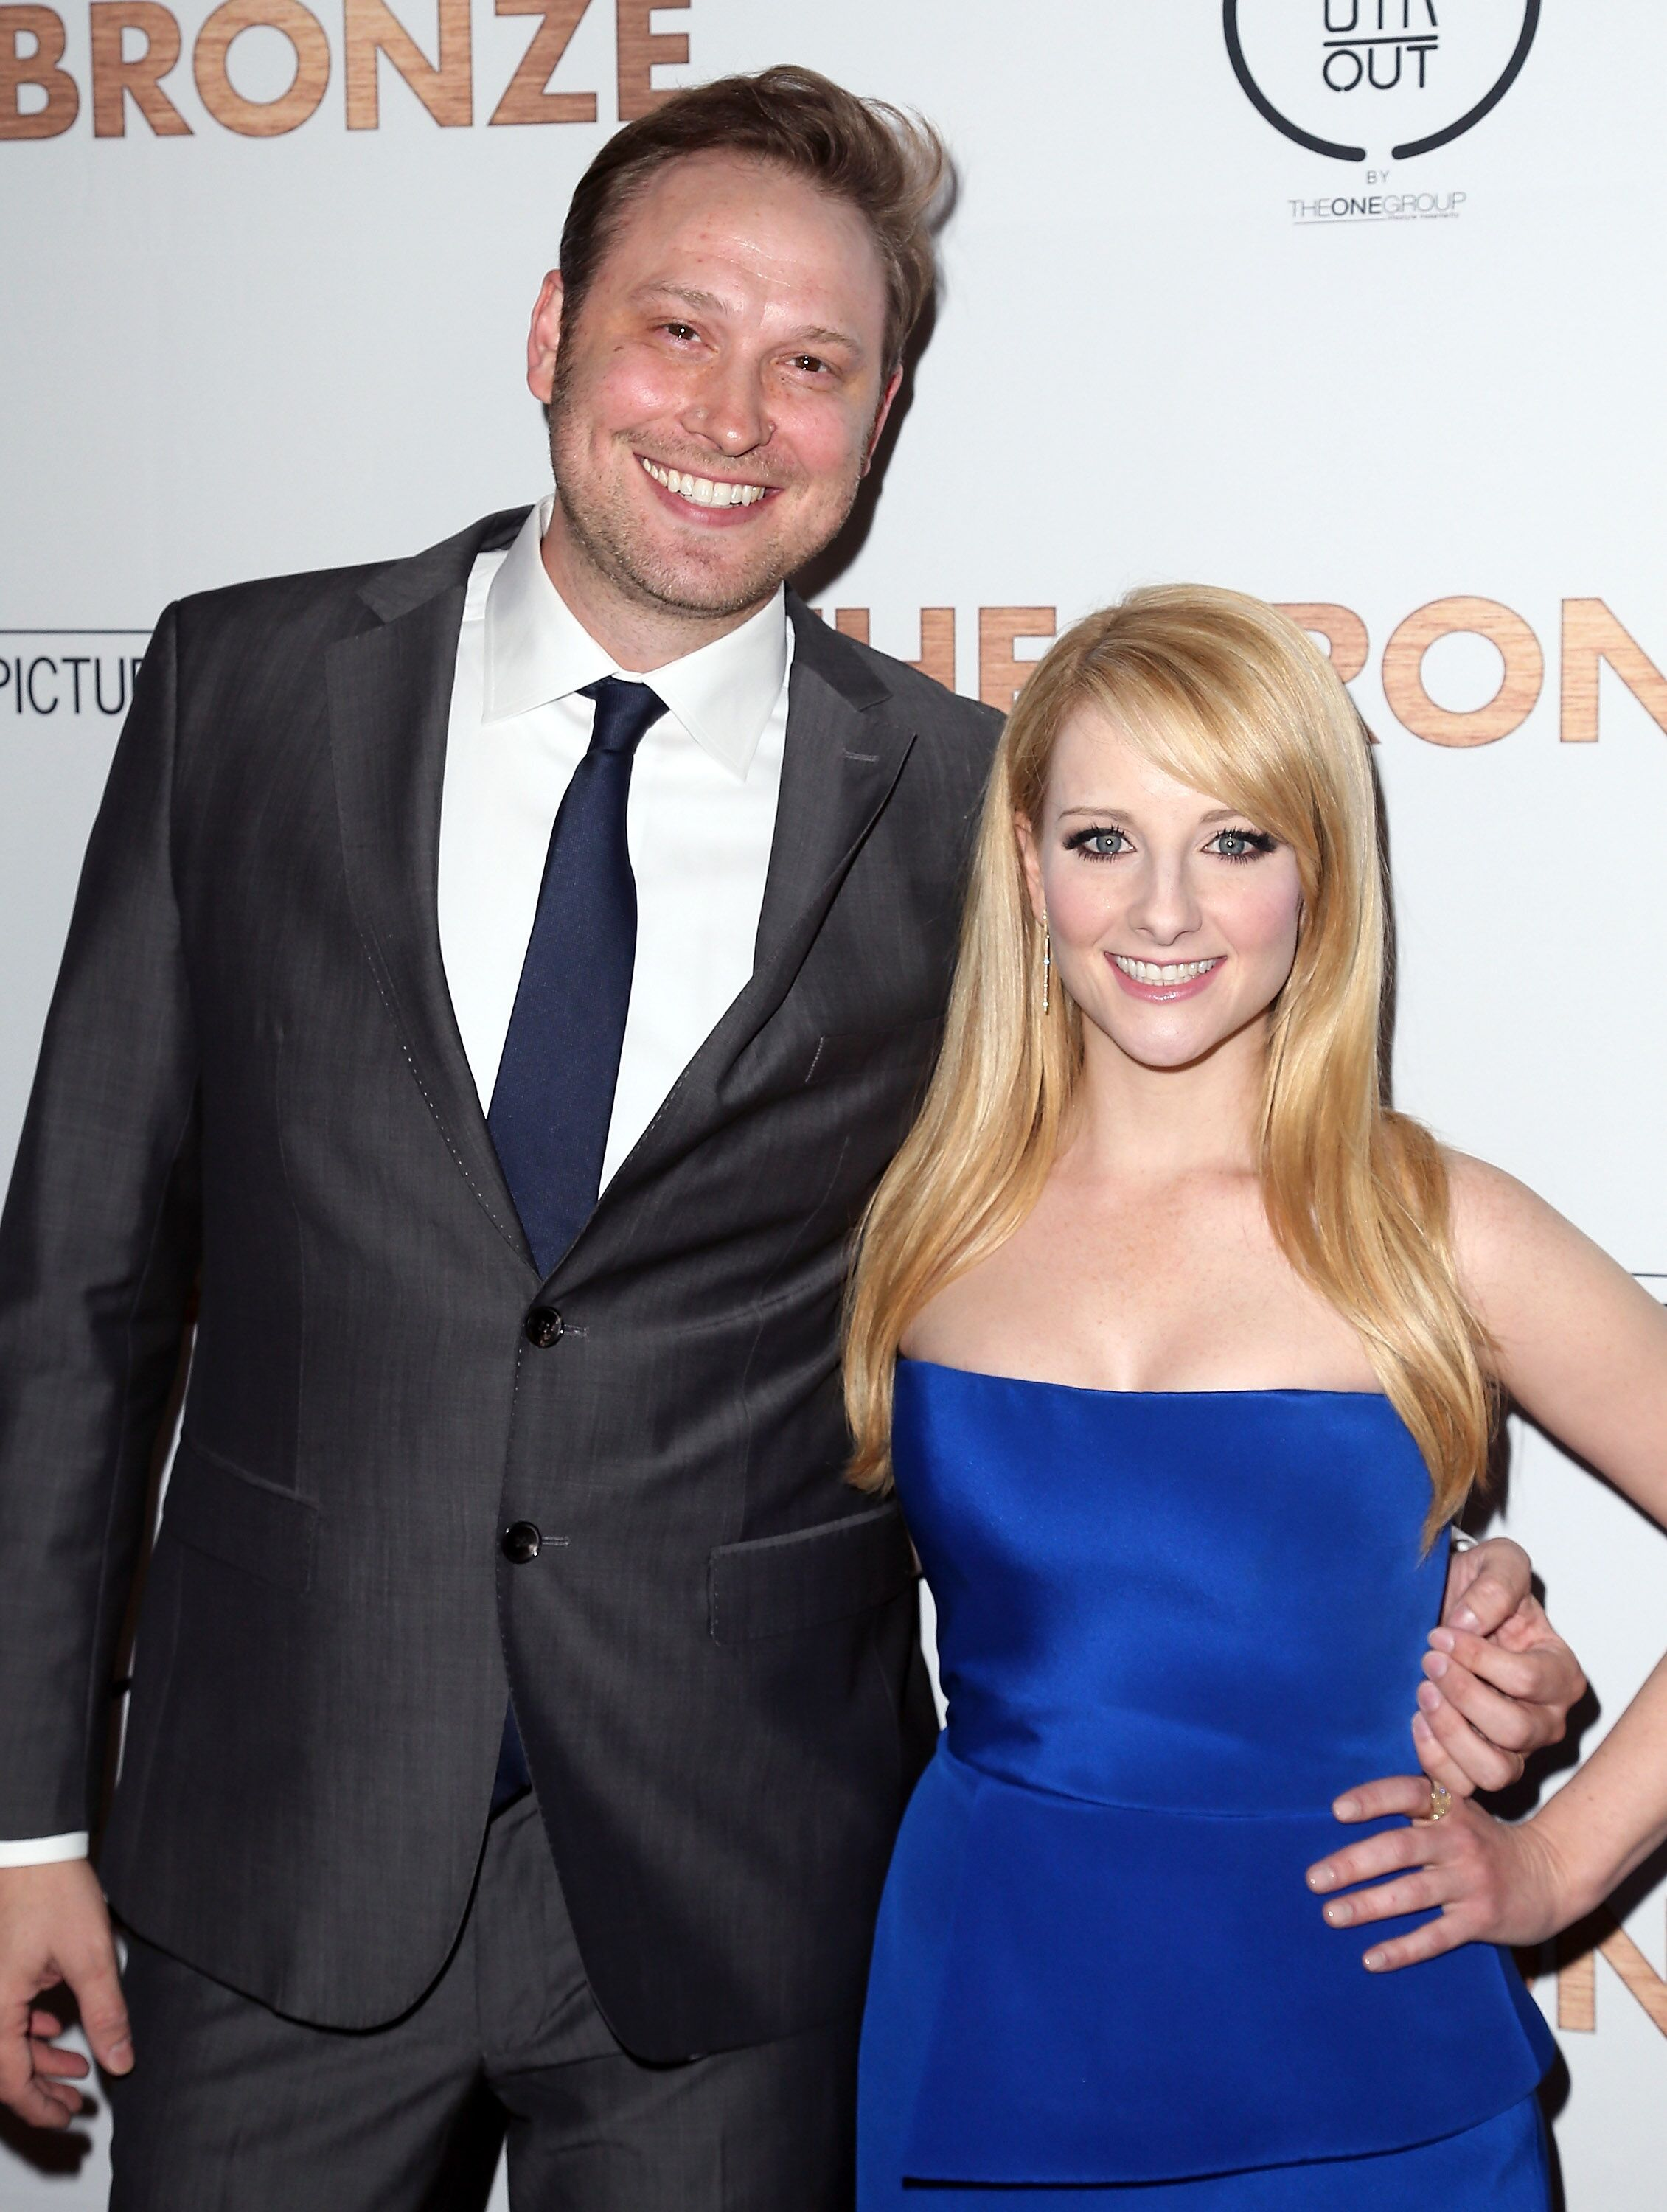 """Writer Winston and wife actress Melissa Rauch at the premiere of """"The Bronze"""" on March 7, 2016, in West Hollywood, California 